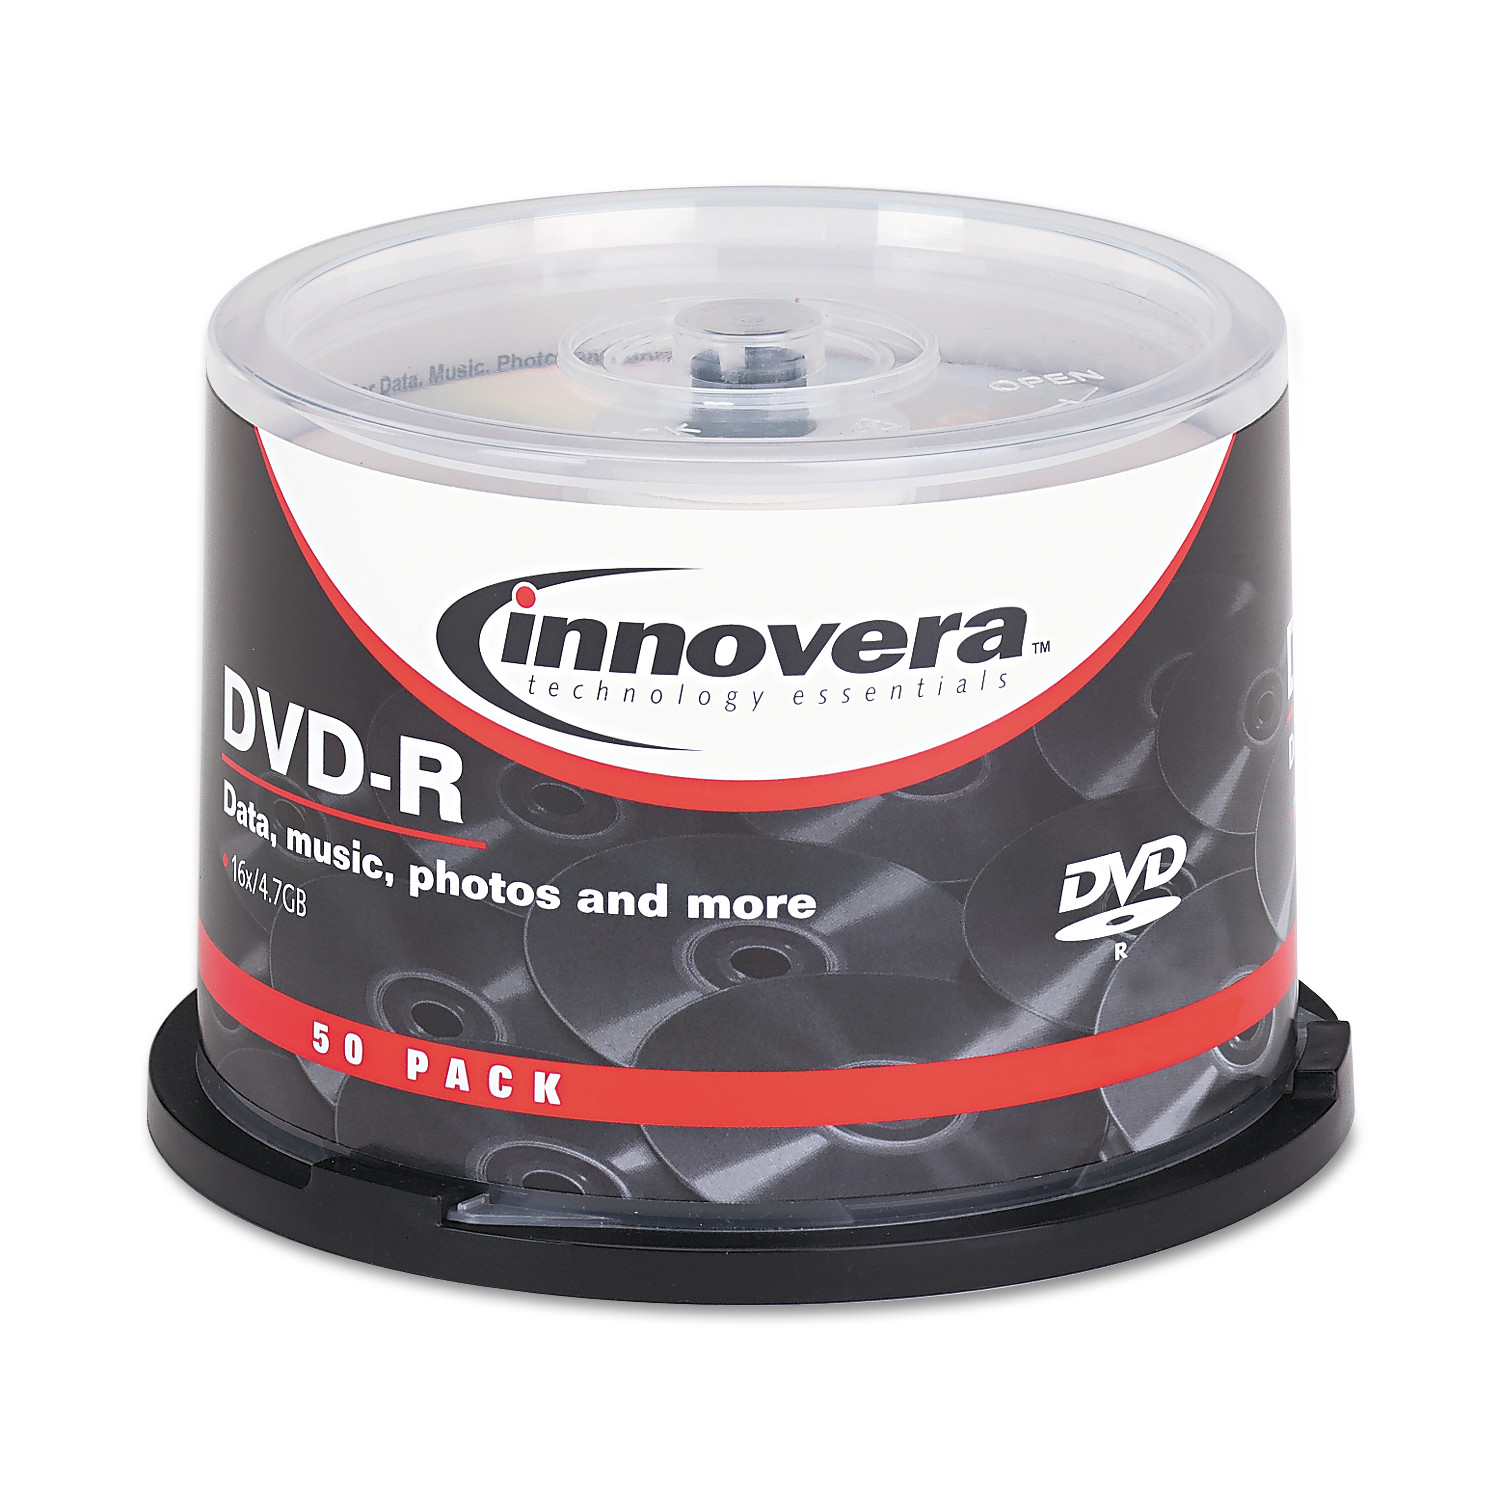 Innovera DVD-R Discs, 4.7GB, 16x, Spindle, Silver, 50/Pack -IVR46850